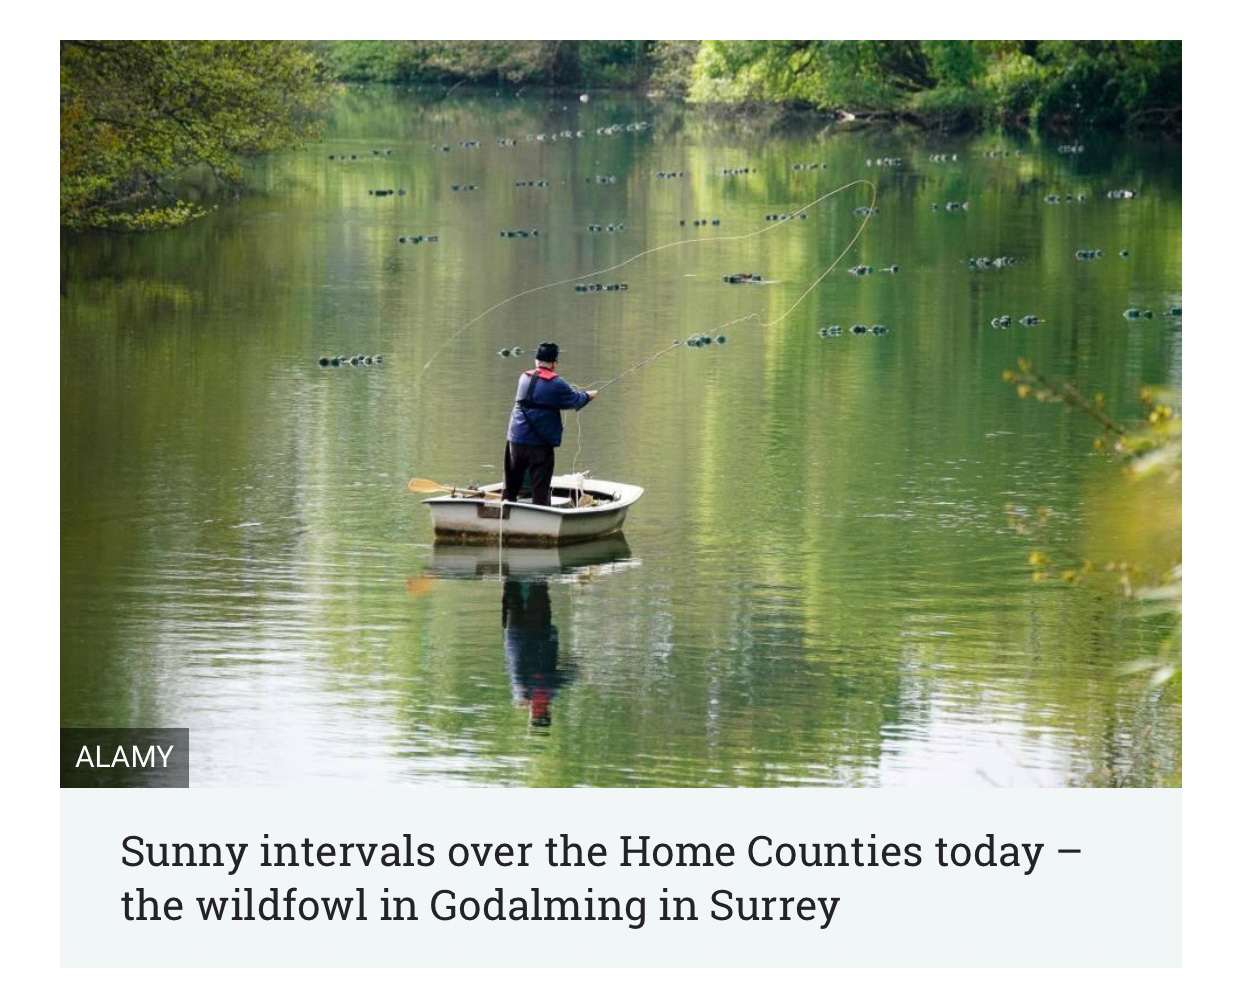 Waterfowl in Godalming Surrey.jpeg